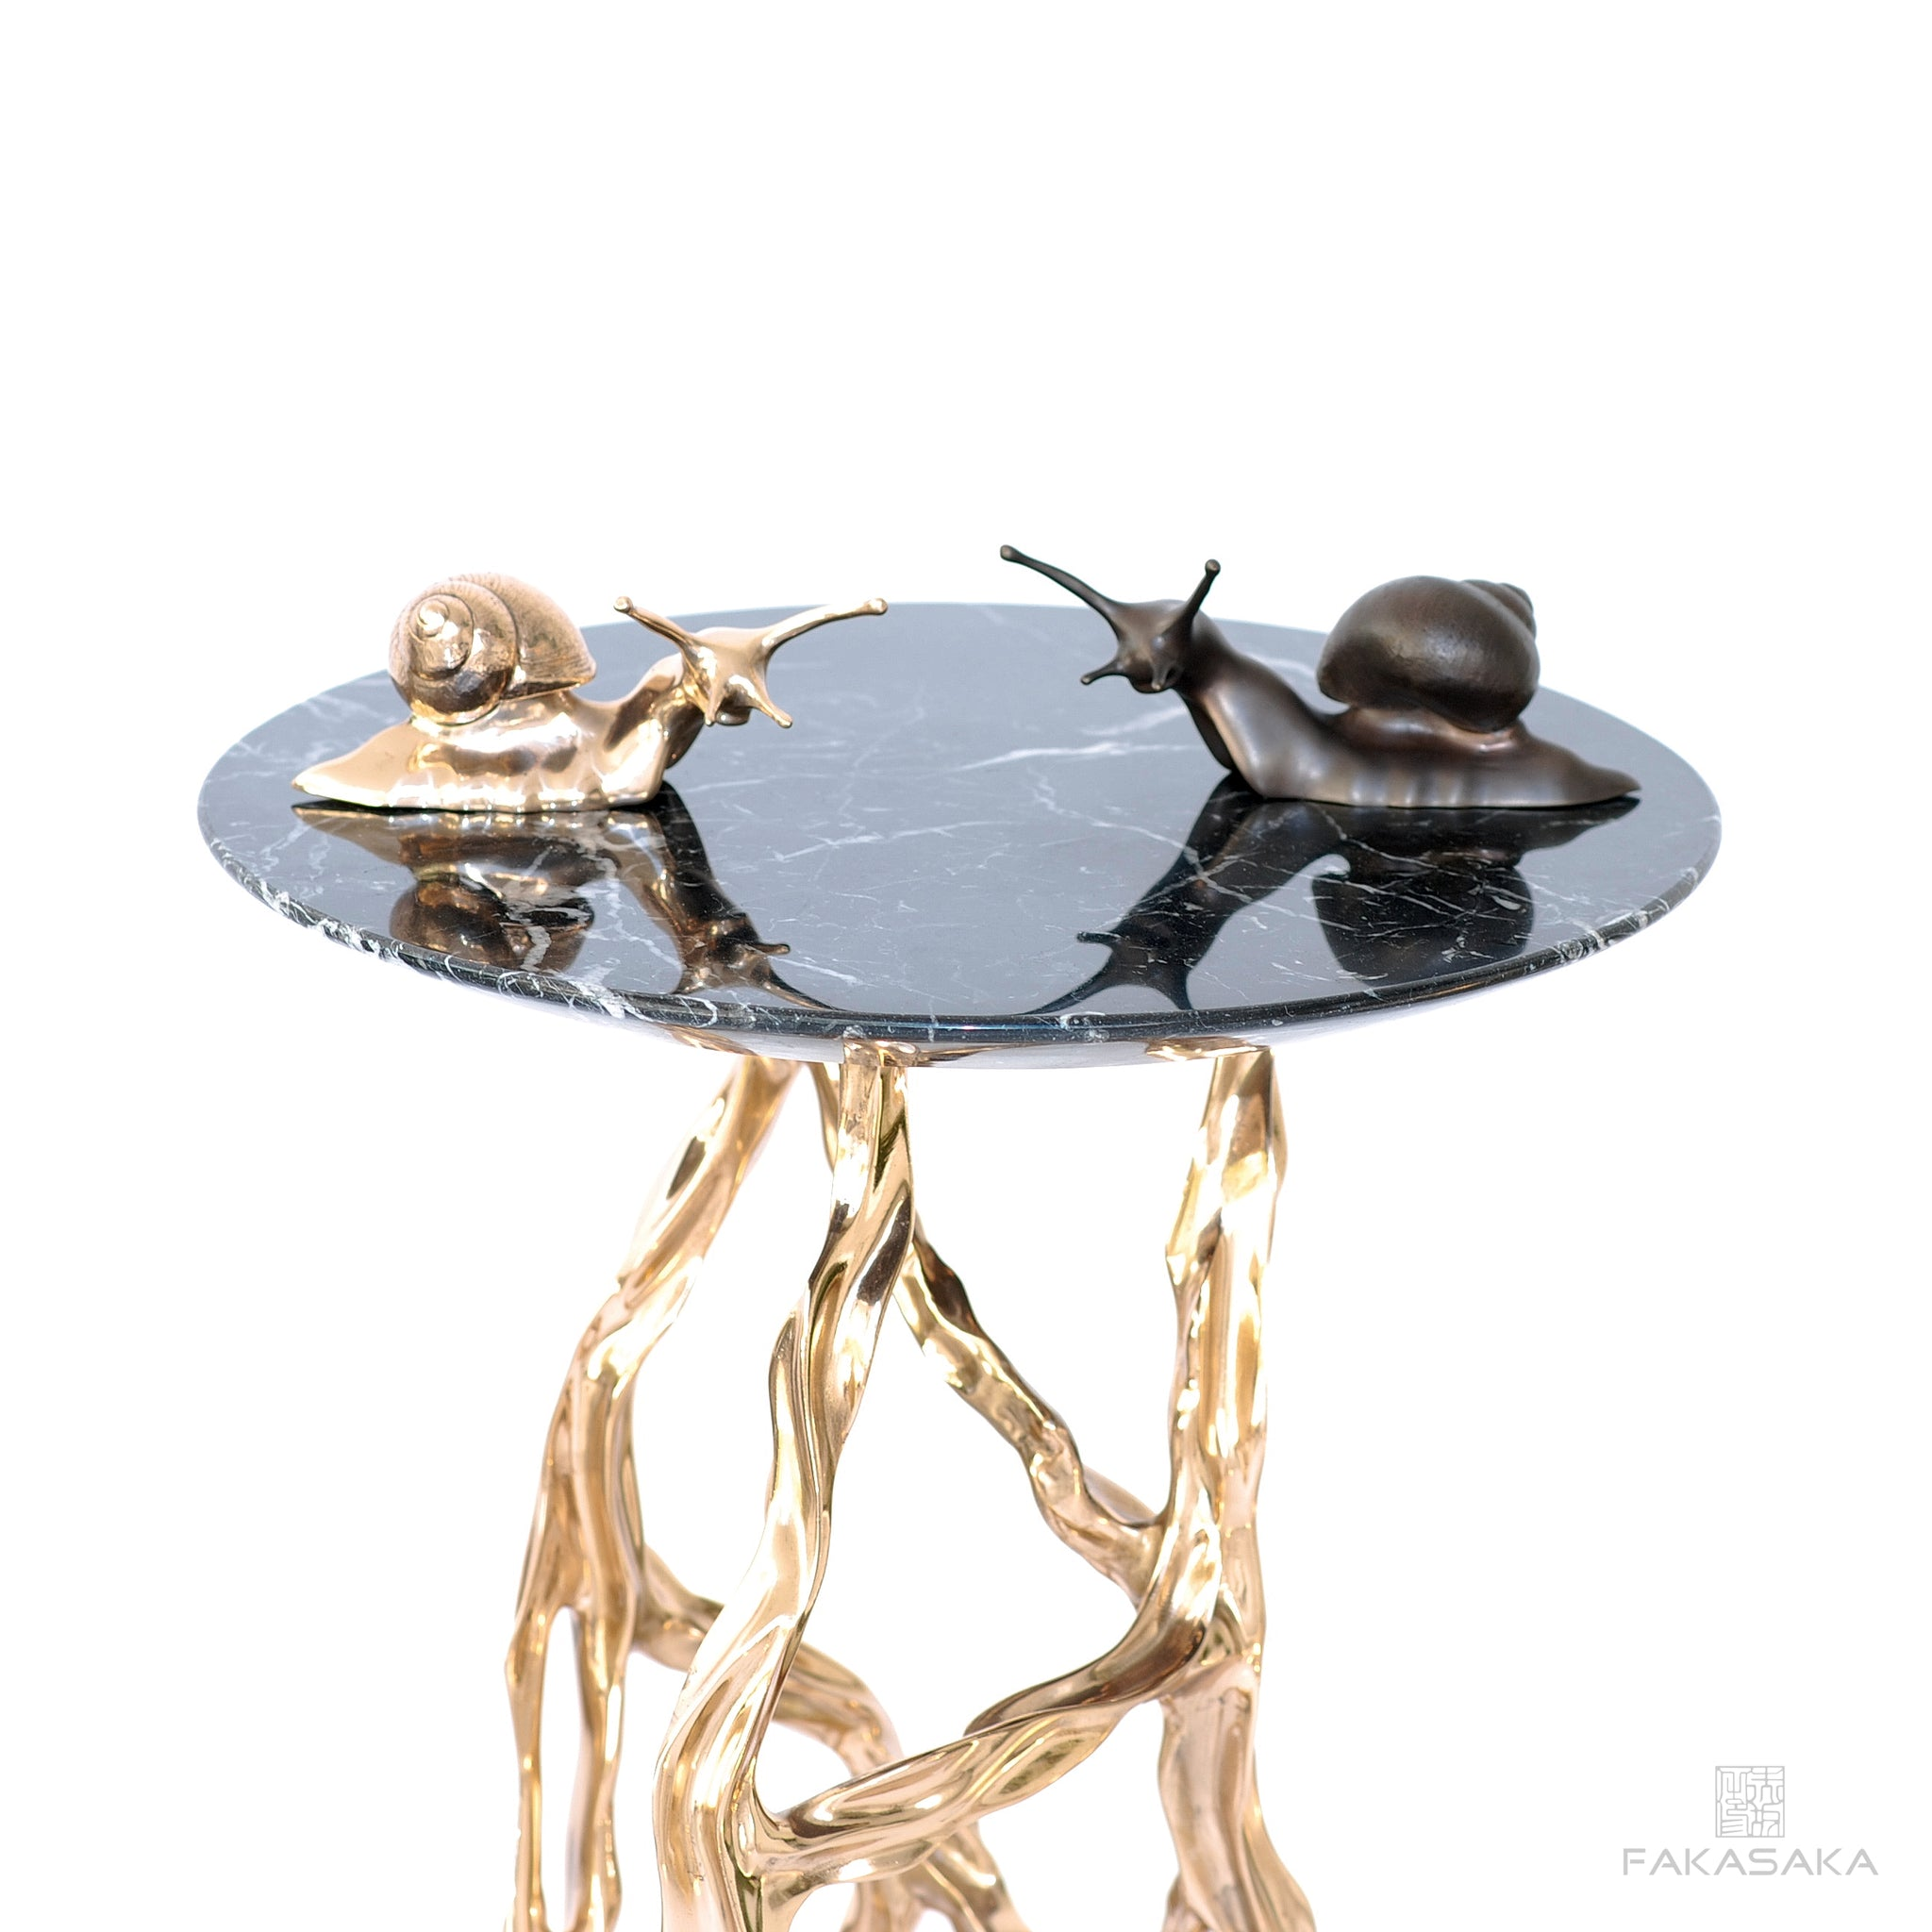 L' ESCARGOT DROITE<br><br>SCULPTURE / PAPER WEIGHT<br><br>POLISHED BRONZE<br>ONYX BASE